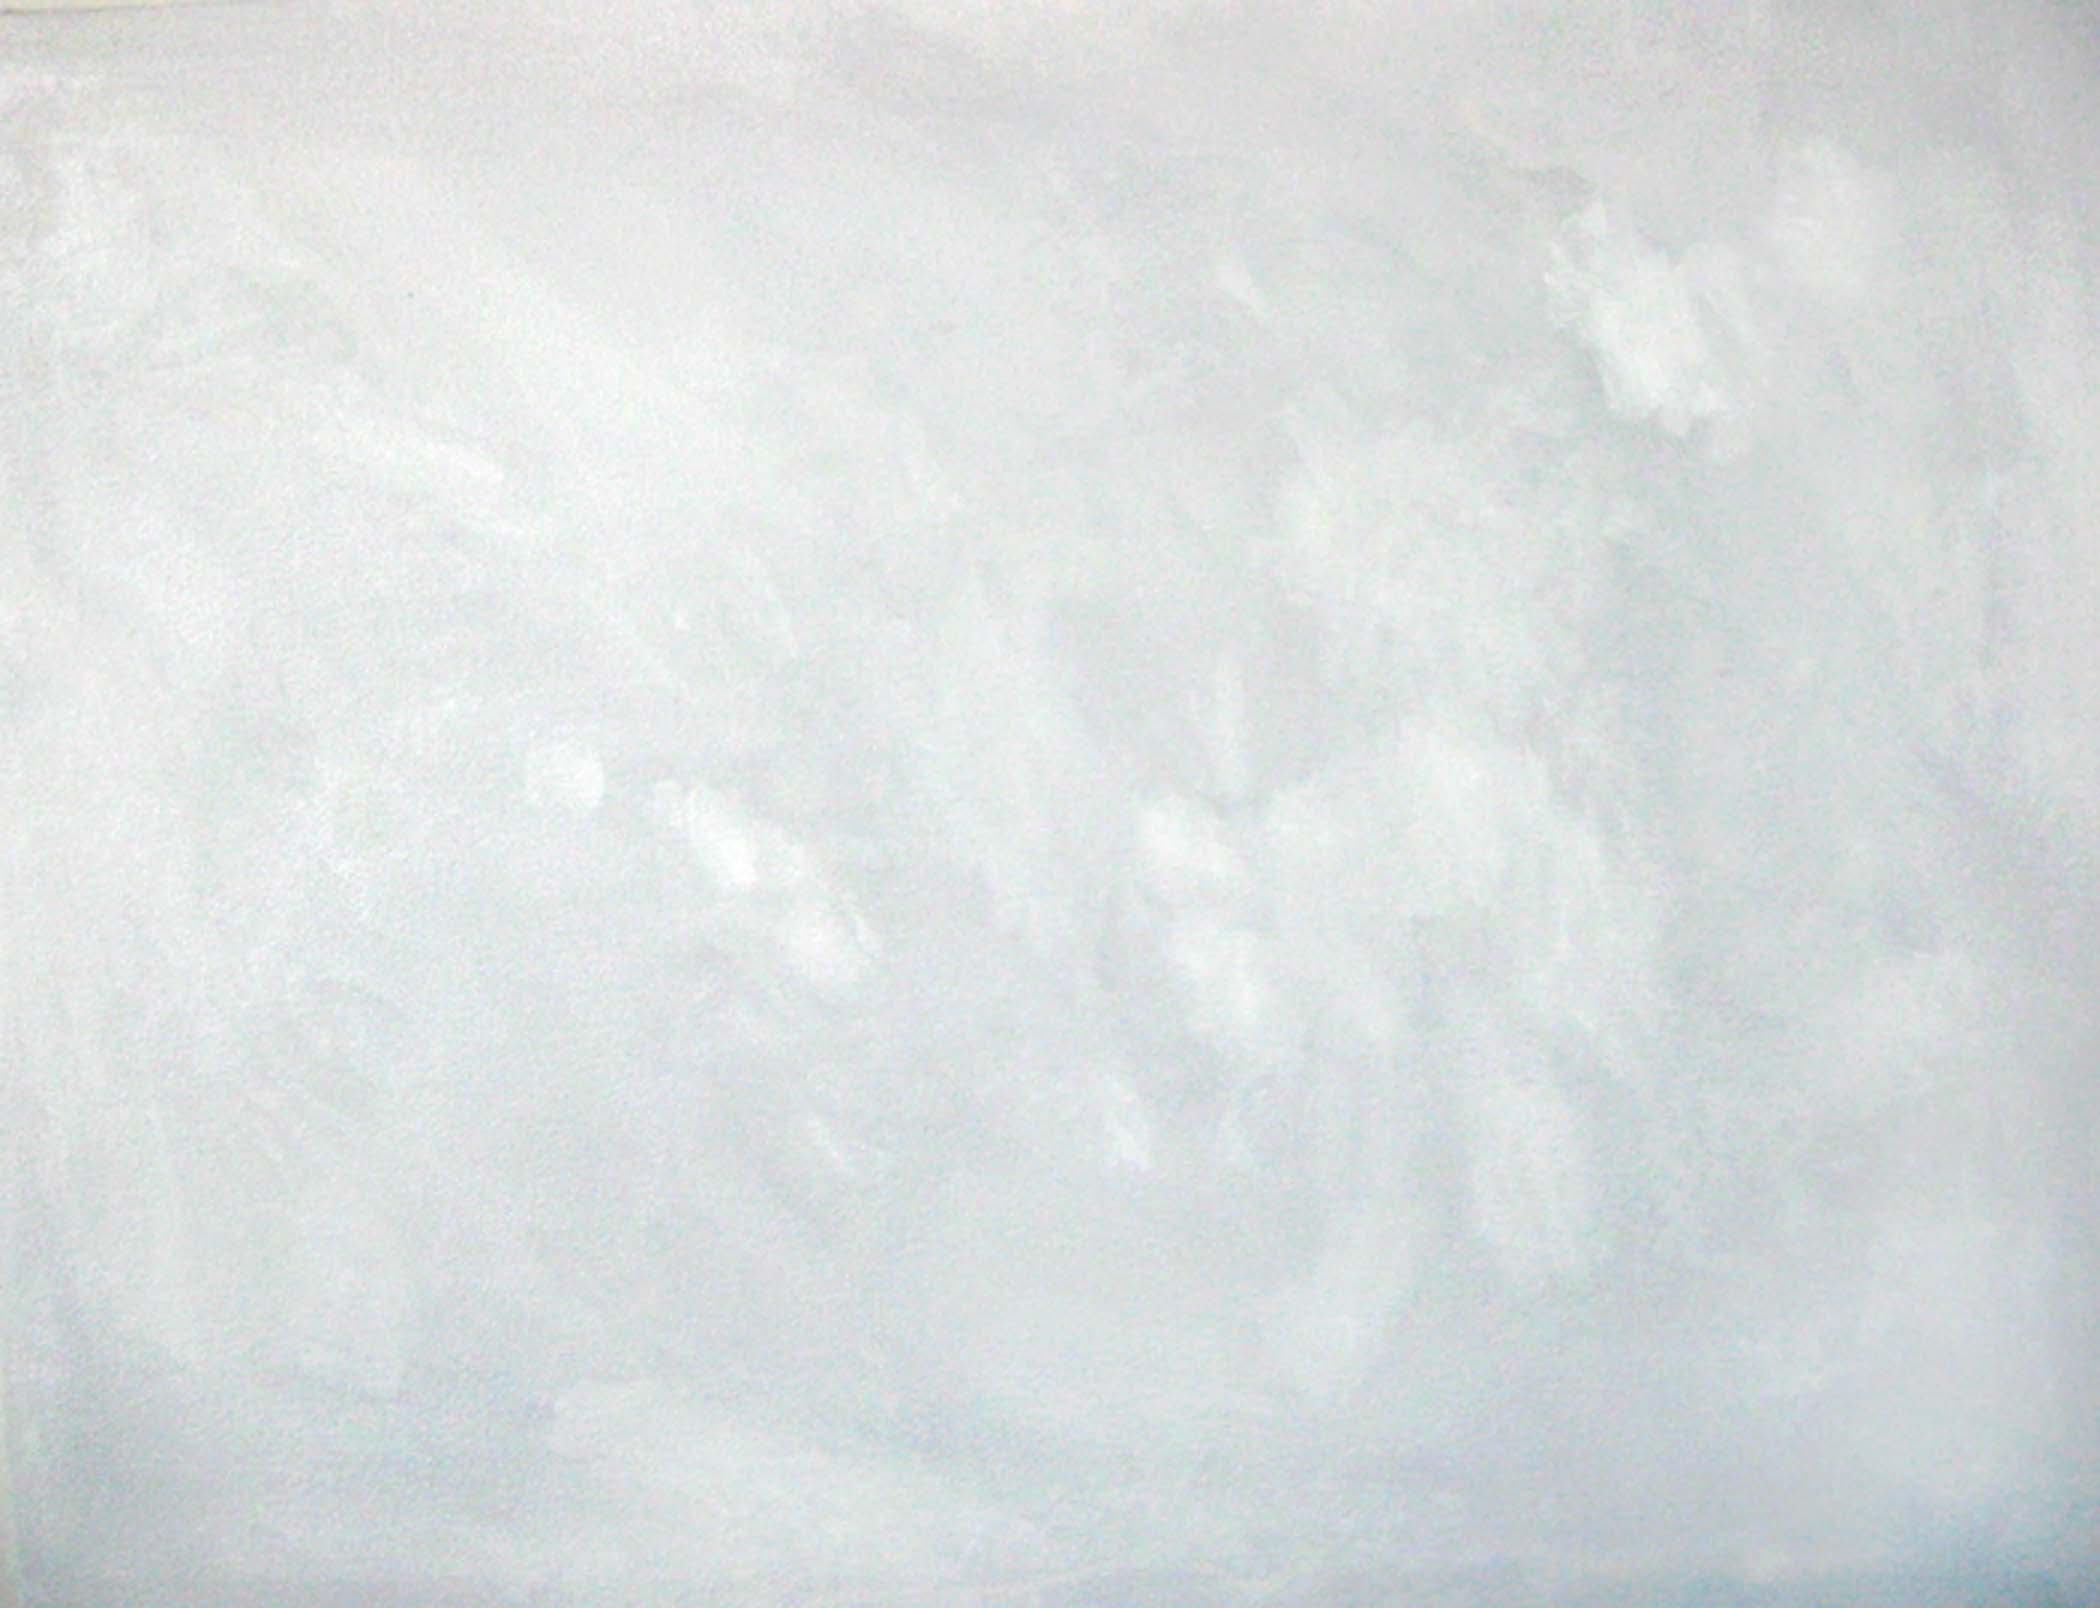 """Beyond the shadow of a doubt,  2005, huile sur toile / oil on canvas, 25""""x 20"""", 51 x 64 cm."""